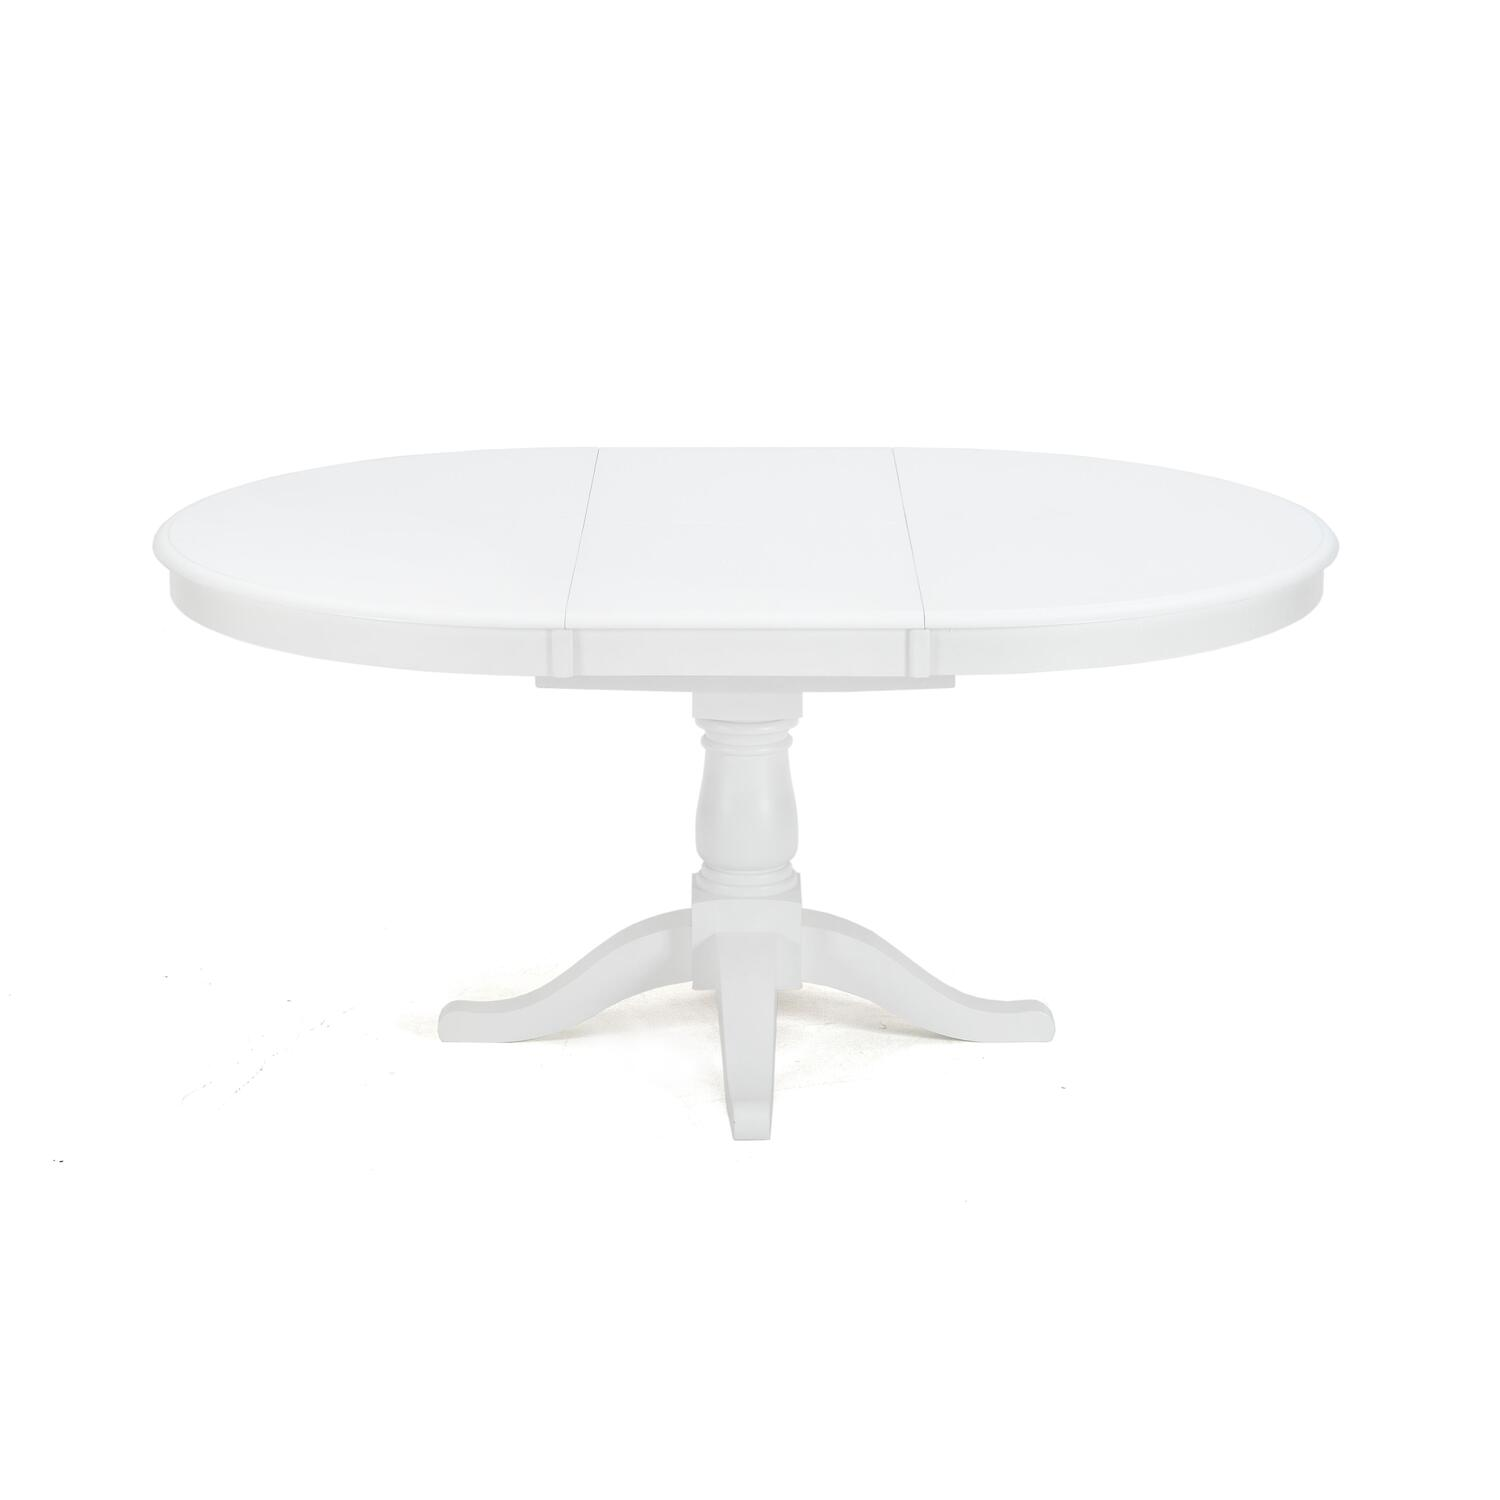 Modern round pedestal dining table - Jofran Casper White Finished Round To Oval Dining Table By Oj Commerce